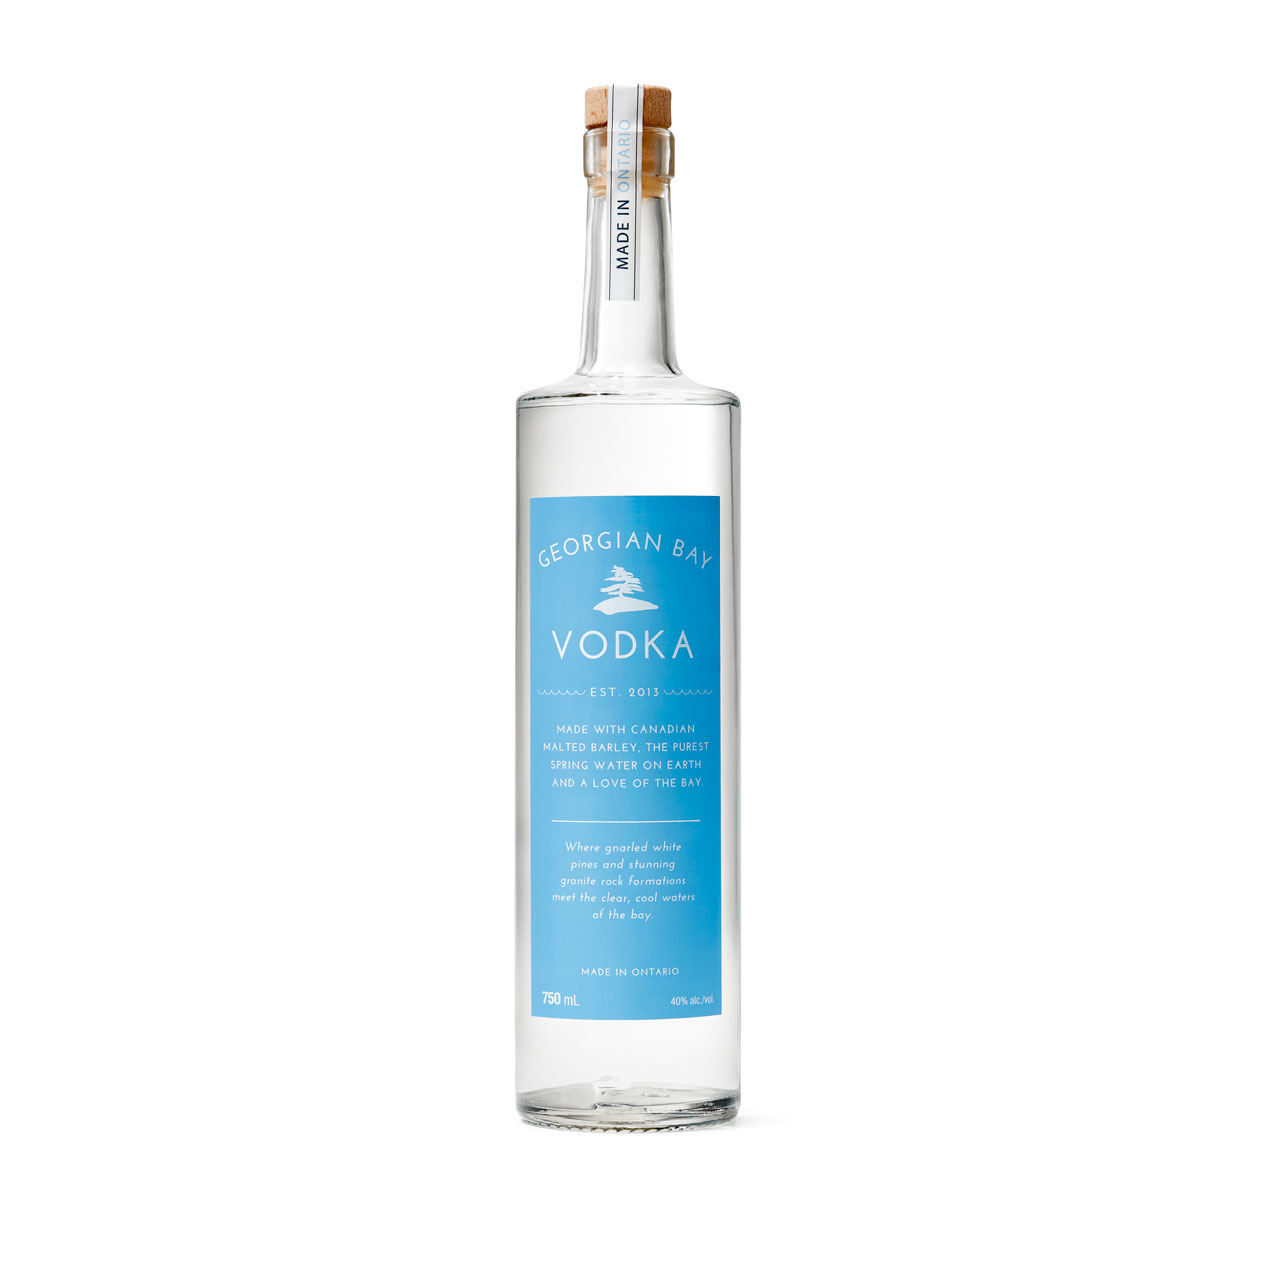 Georgian Bay Vodka - the best Vodka in the world